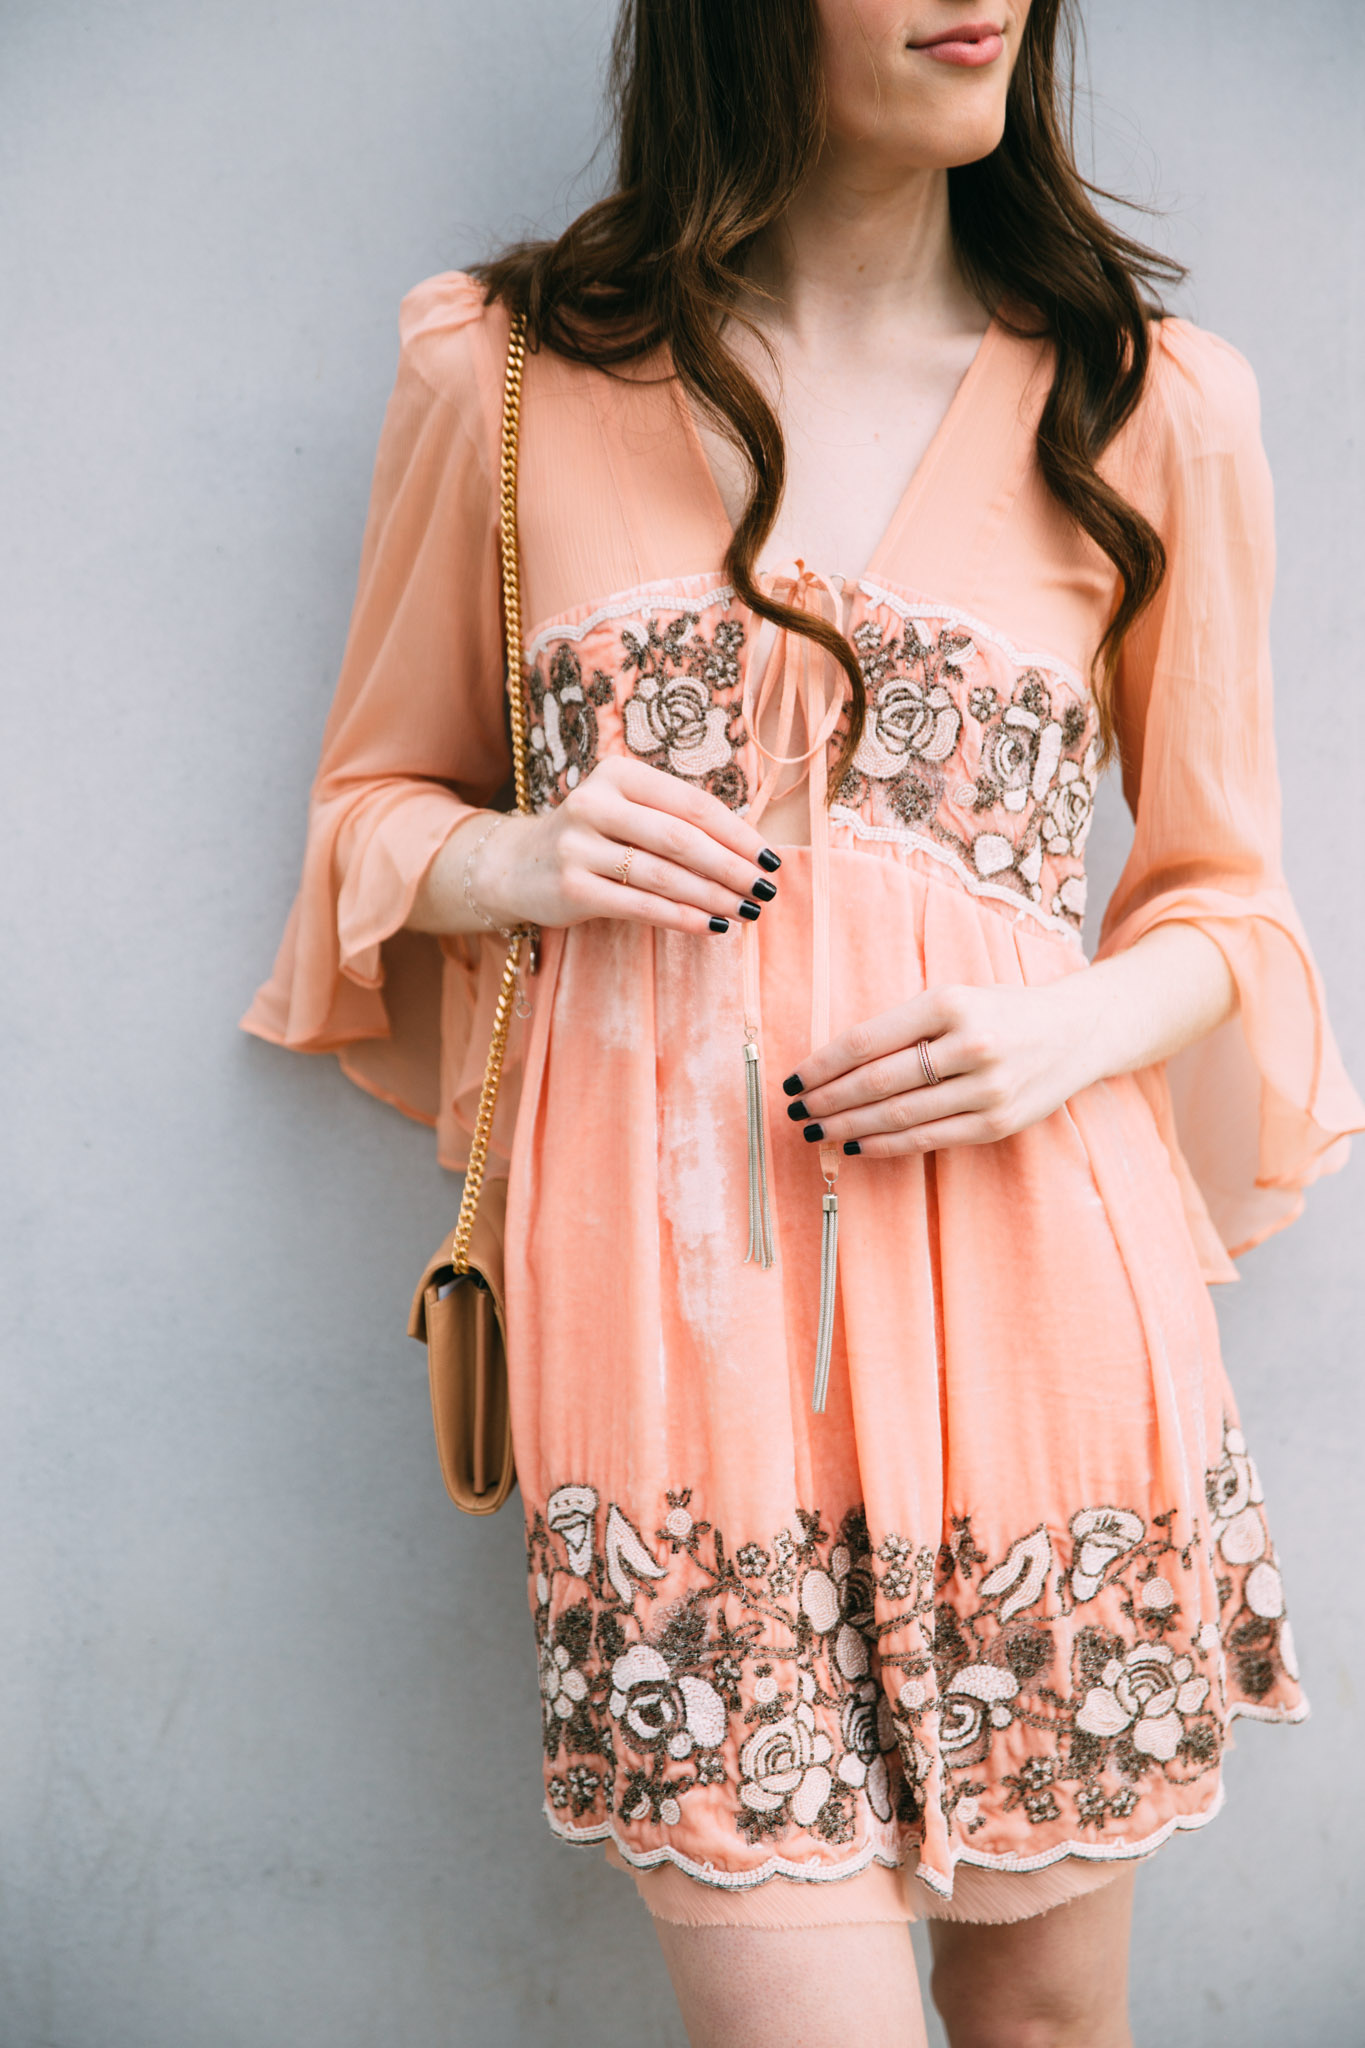 Free People Gemma's limited edition holiday dress